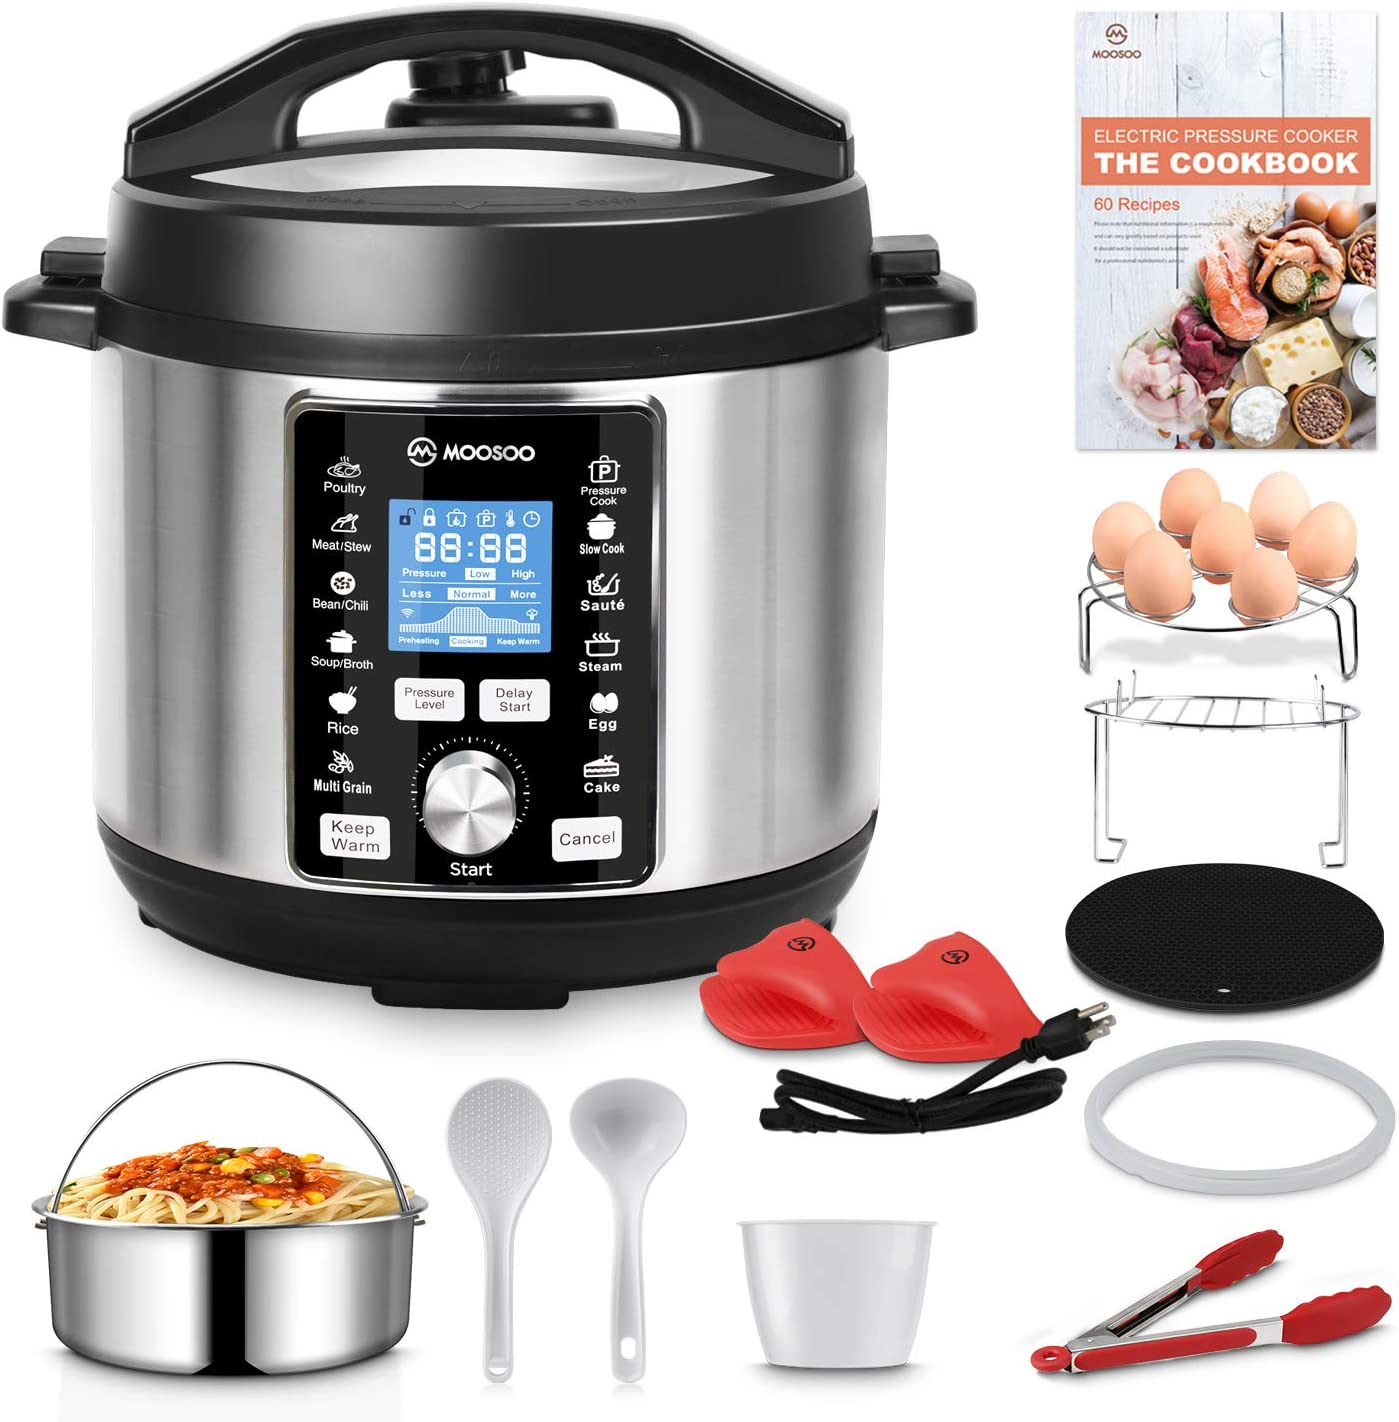 Rice cooker vs slow cooker : What's the best electric pressure cooker to buy